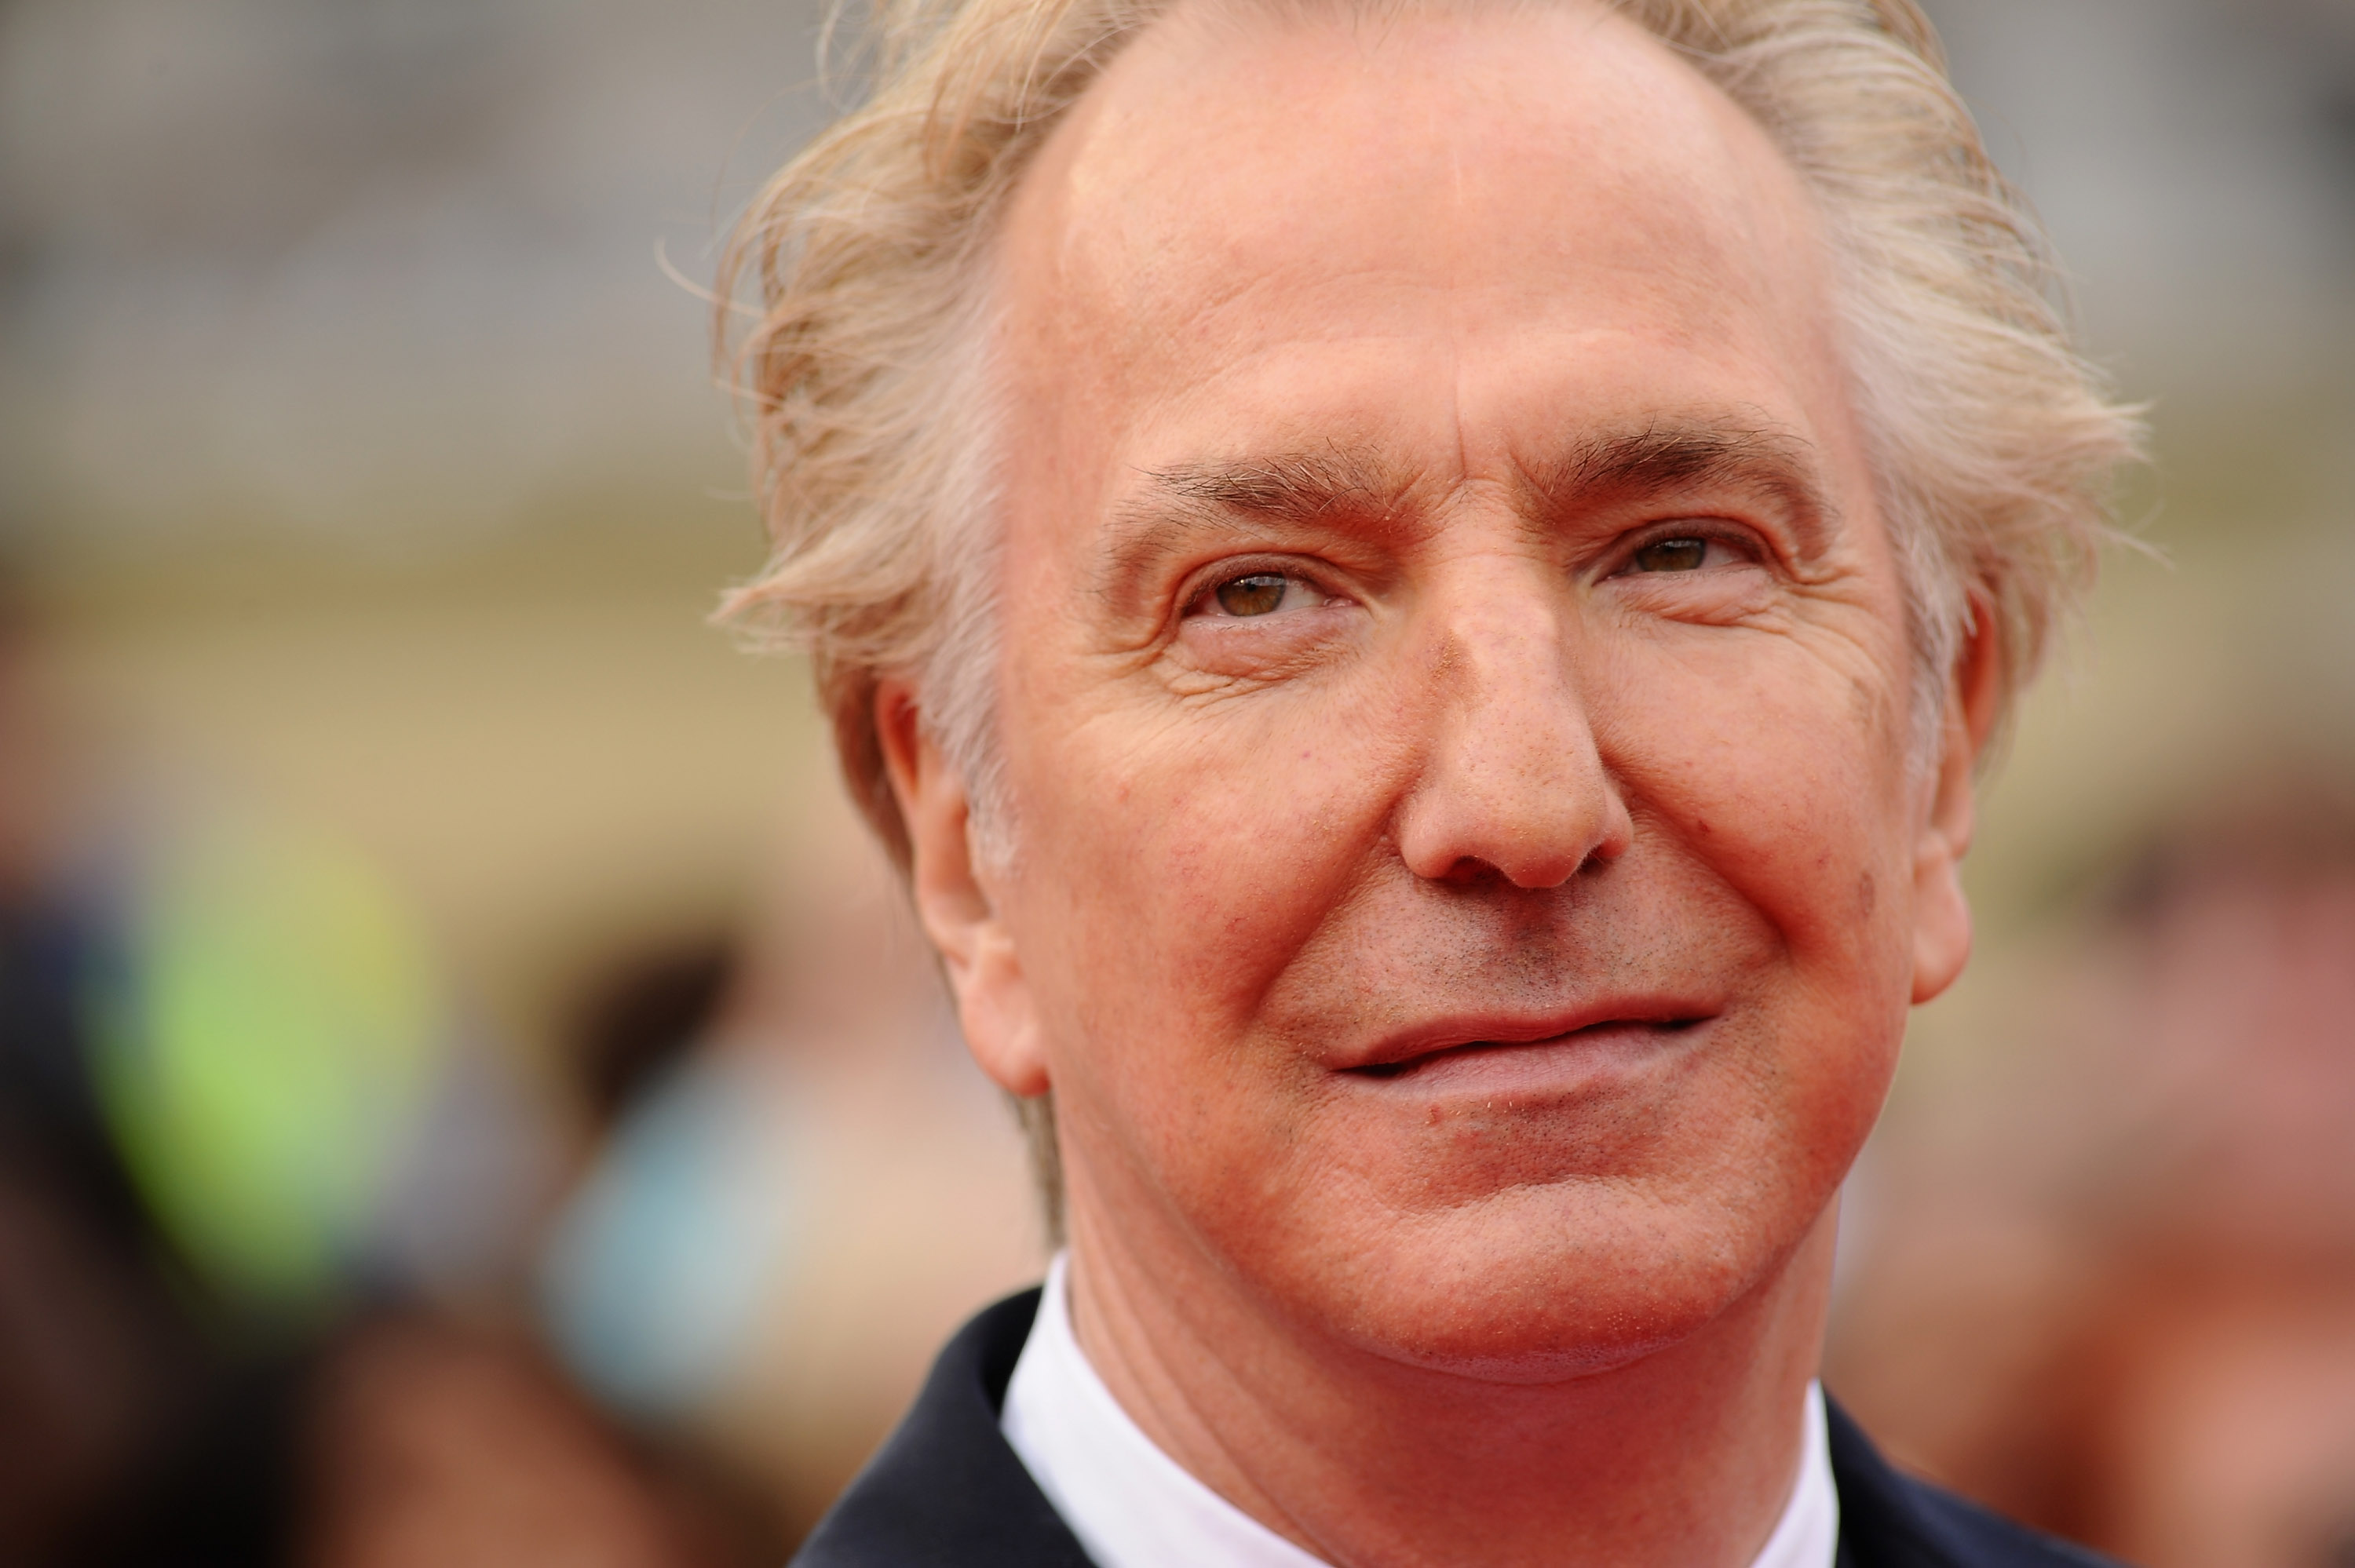 LONDON, ENGLAND - JULY 07: Alan Rickman attends the World Premiere of Harry Potter and The Deathly Hallows - Part 2 at Trafalgar Square on July 7, 2011 in London, England. (Photo by Ian Gavan/Getty Images)